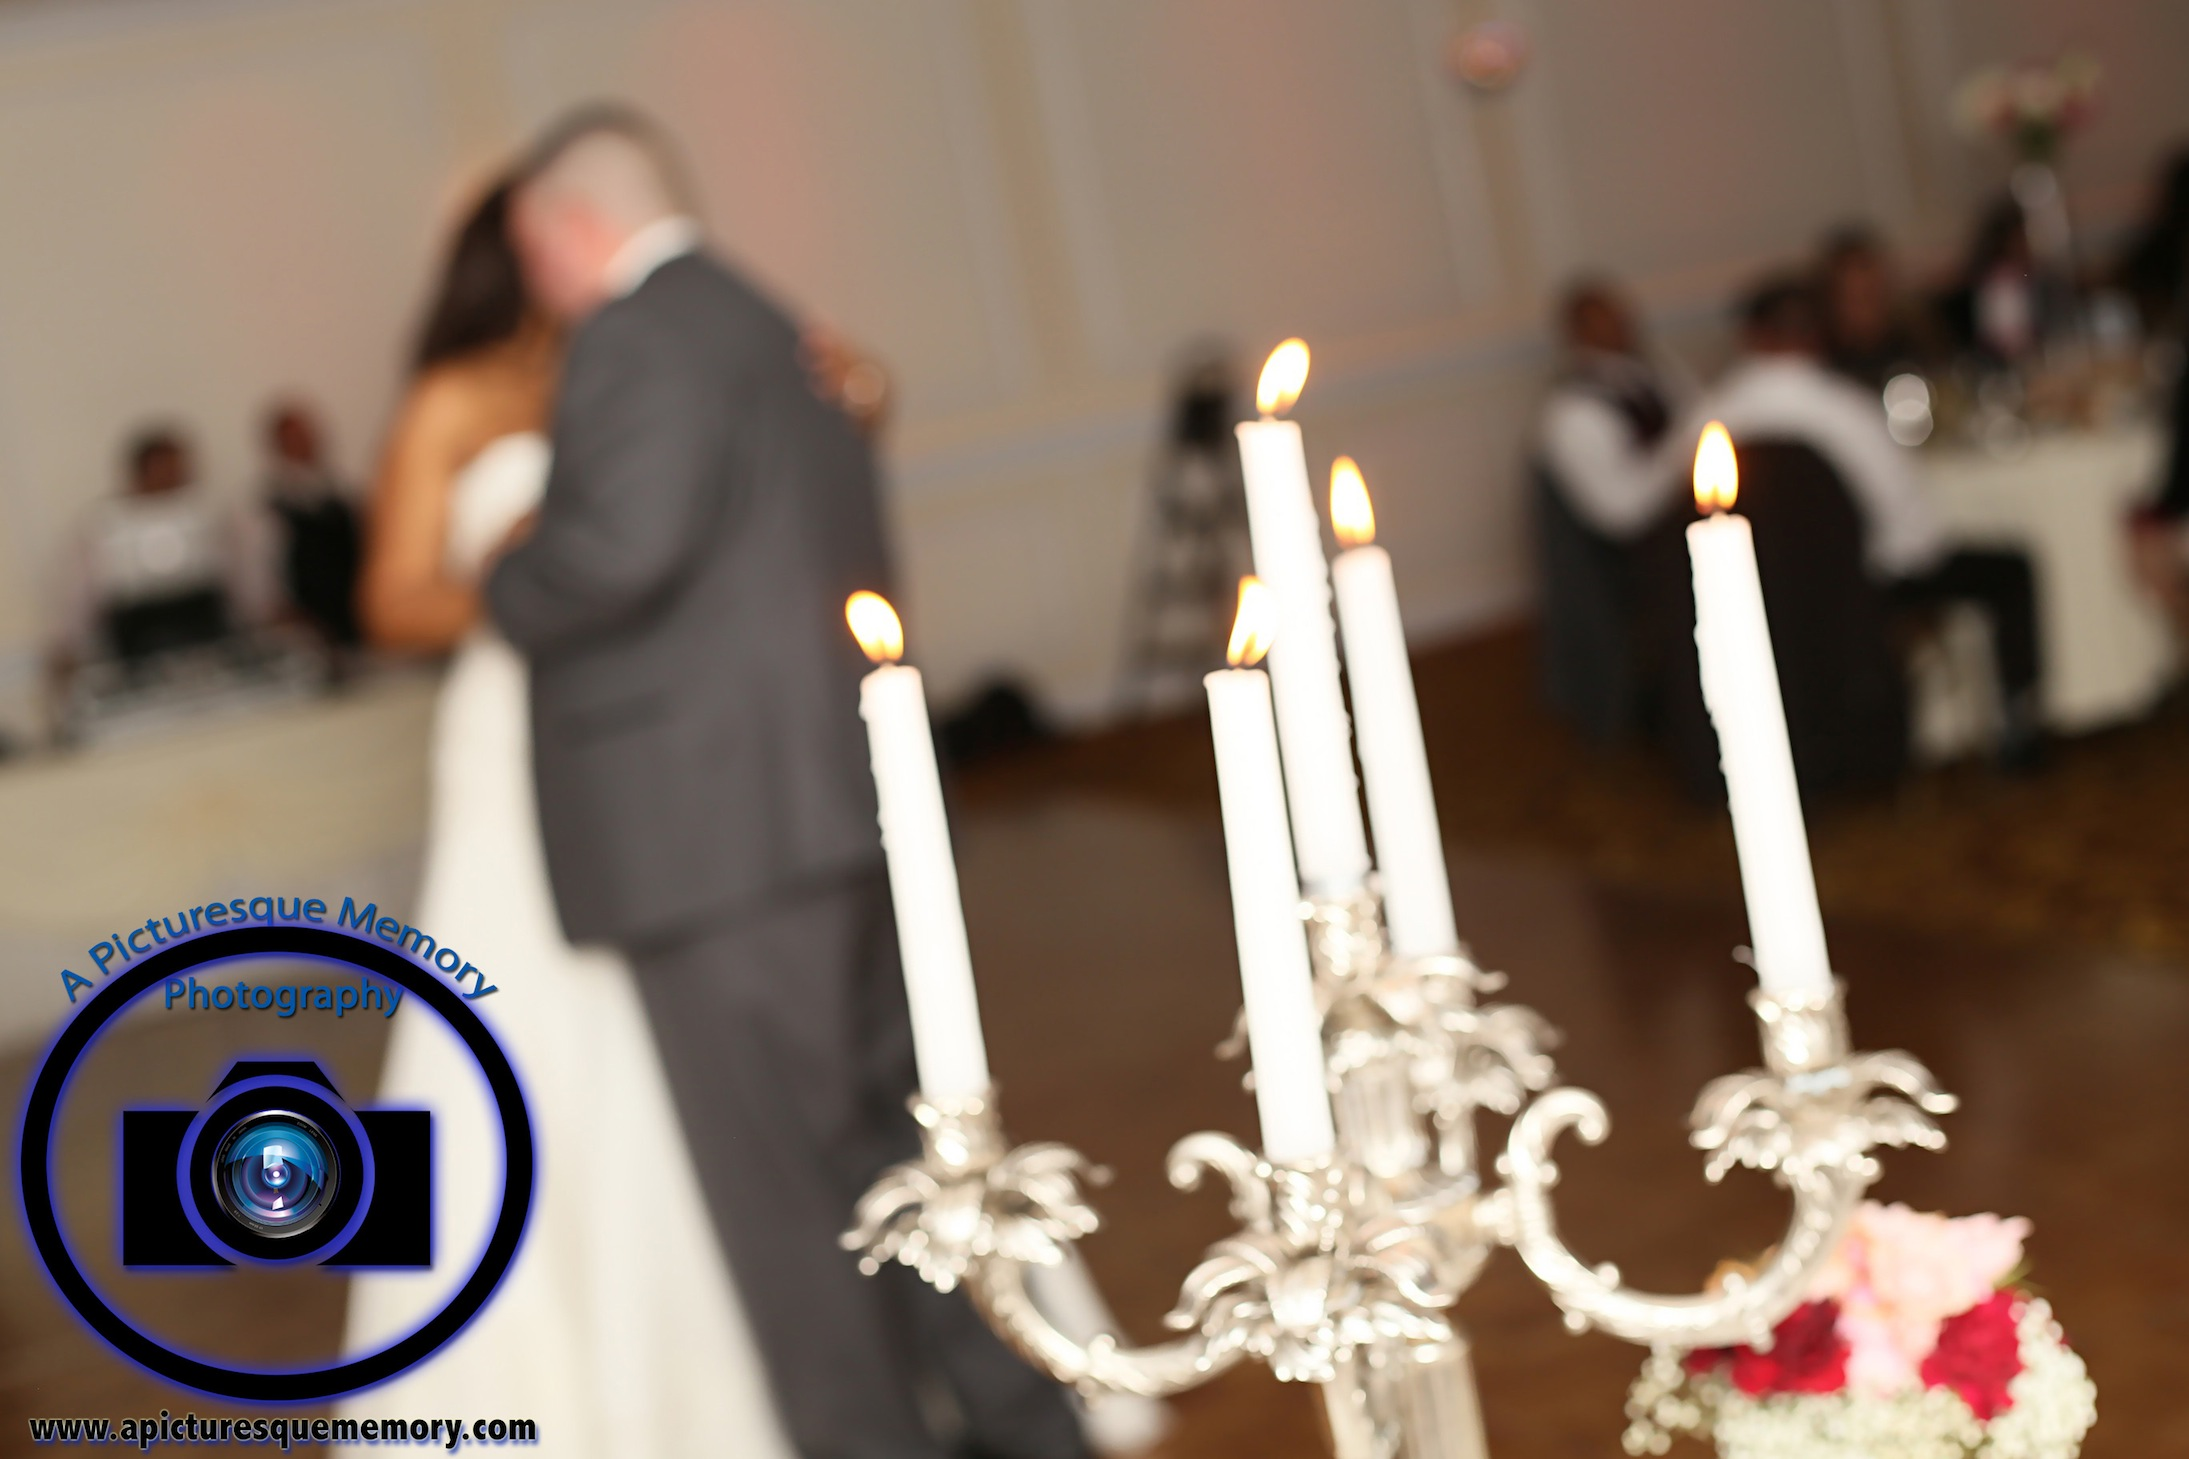 #njwedding, #njweddingphotography, #southbrunswickweddingphotographer#weddingphotos, #apicturesquememoryphotography, #pierresofsouthbrunswickweddingphotographer, #brideandgroomdancing